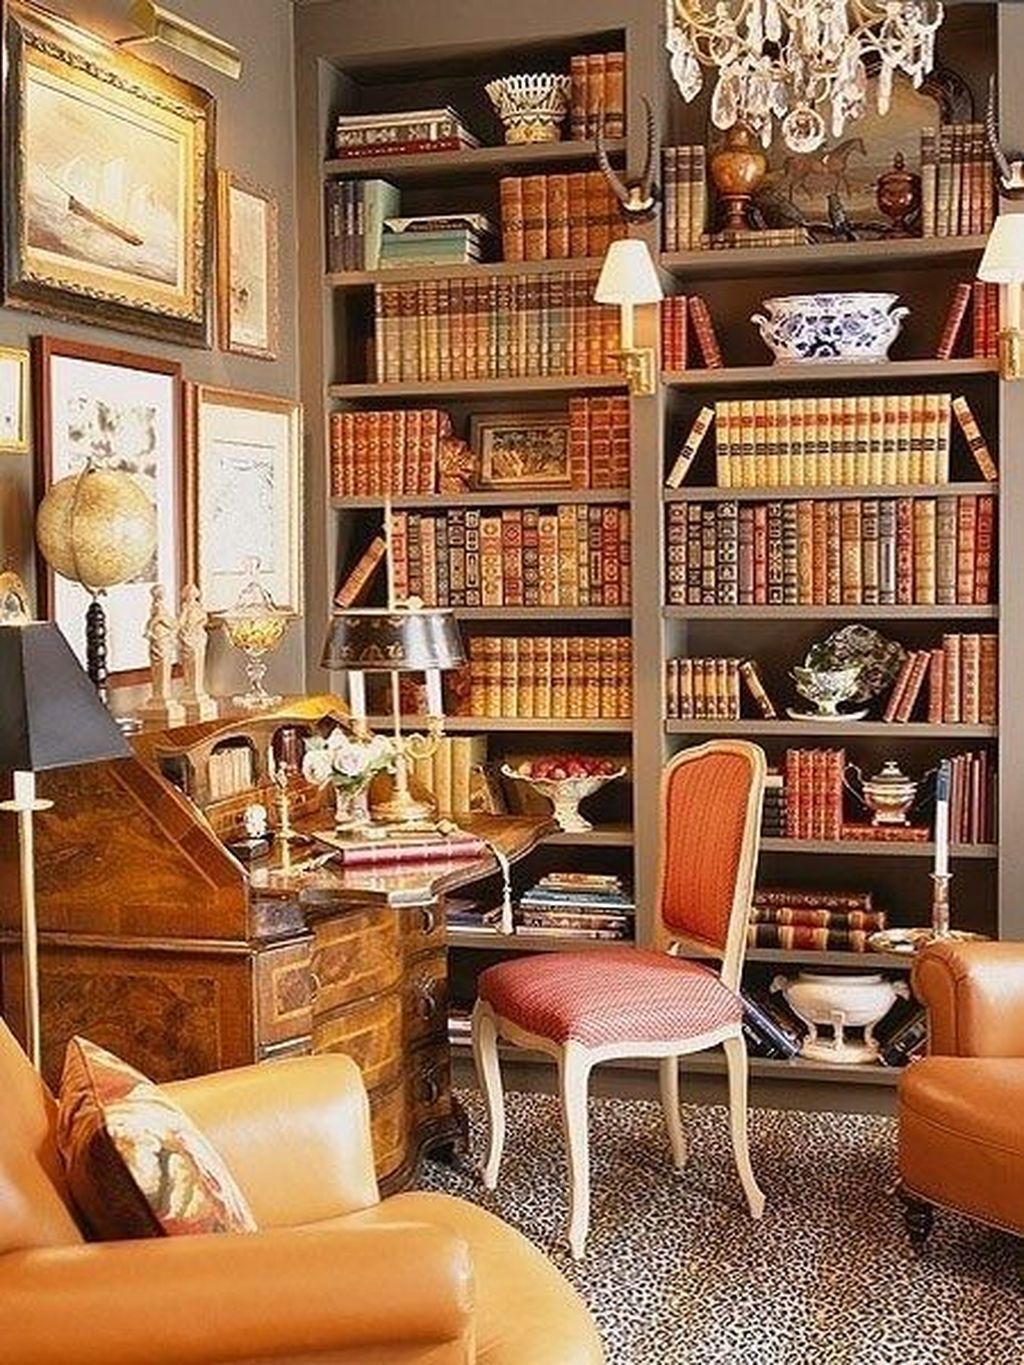 40 Inspiring Vintage Home Library Ideas To Maximize Your Living